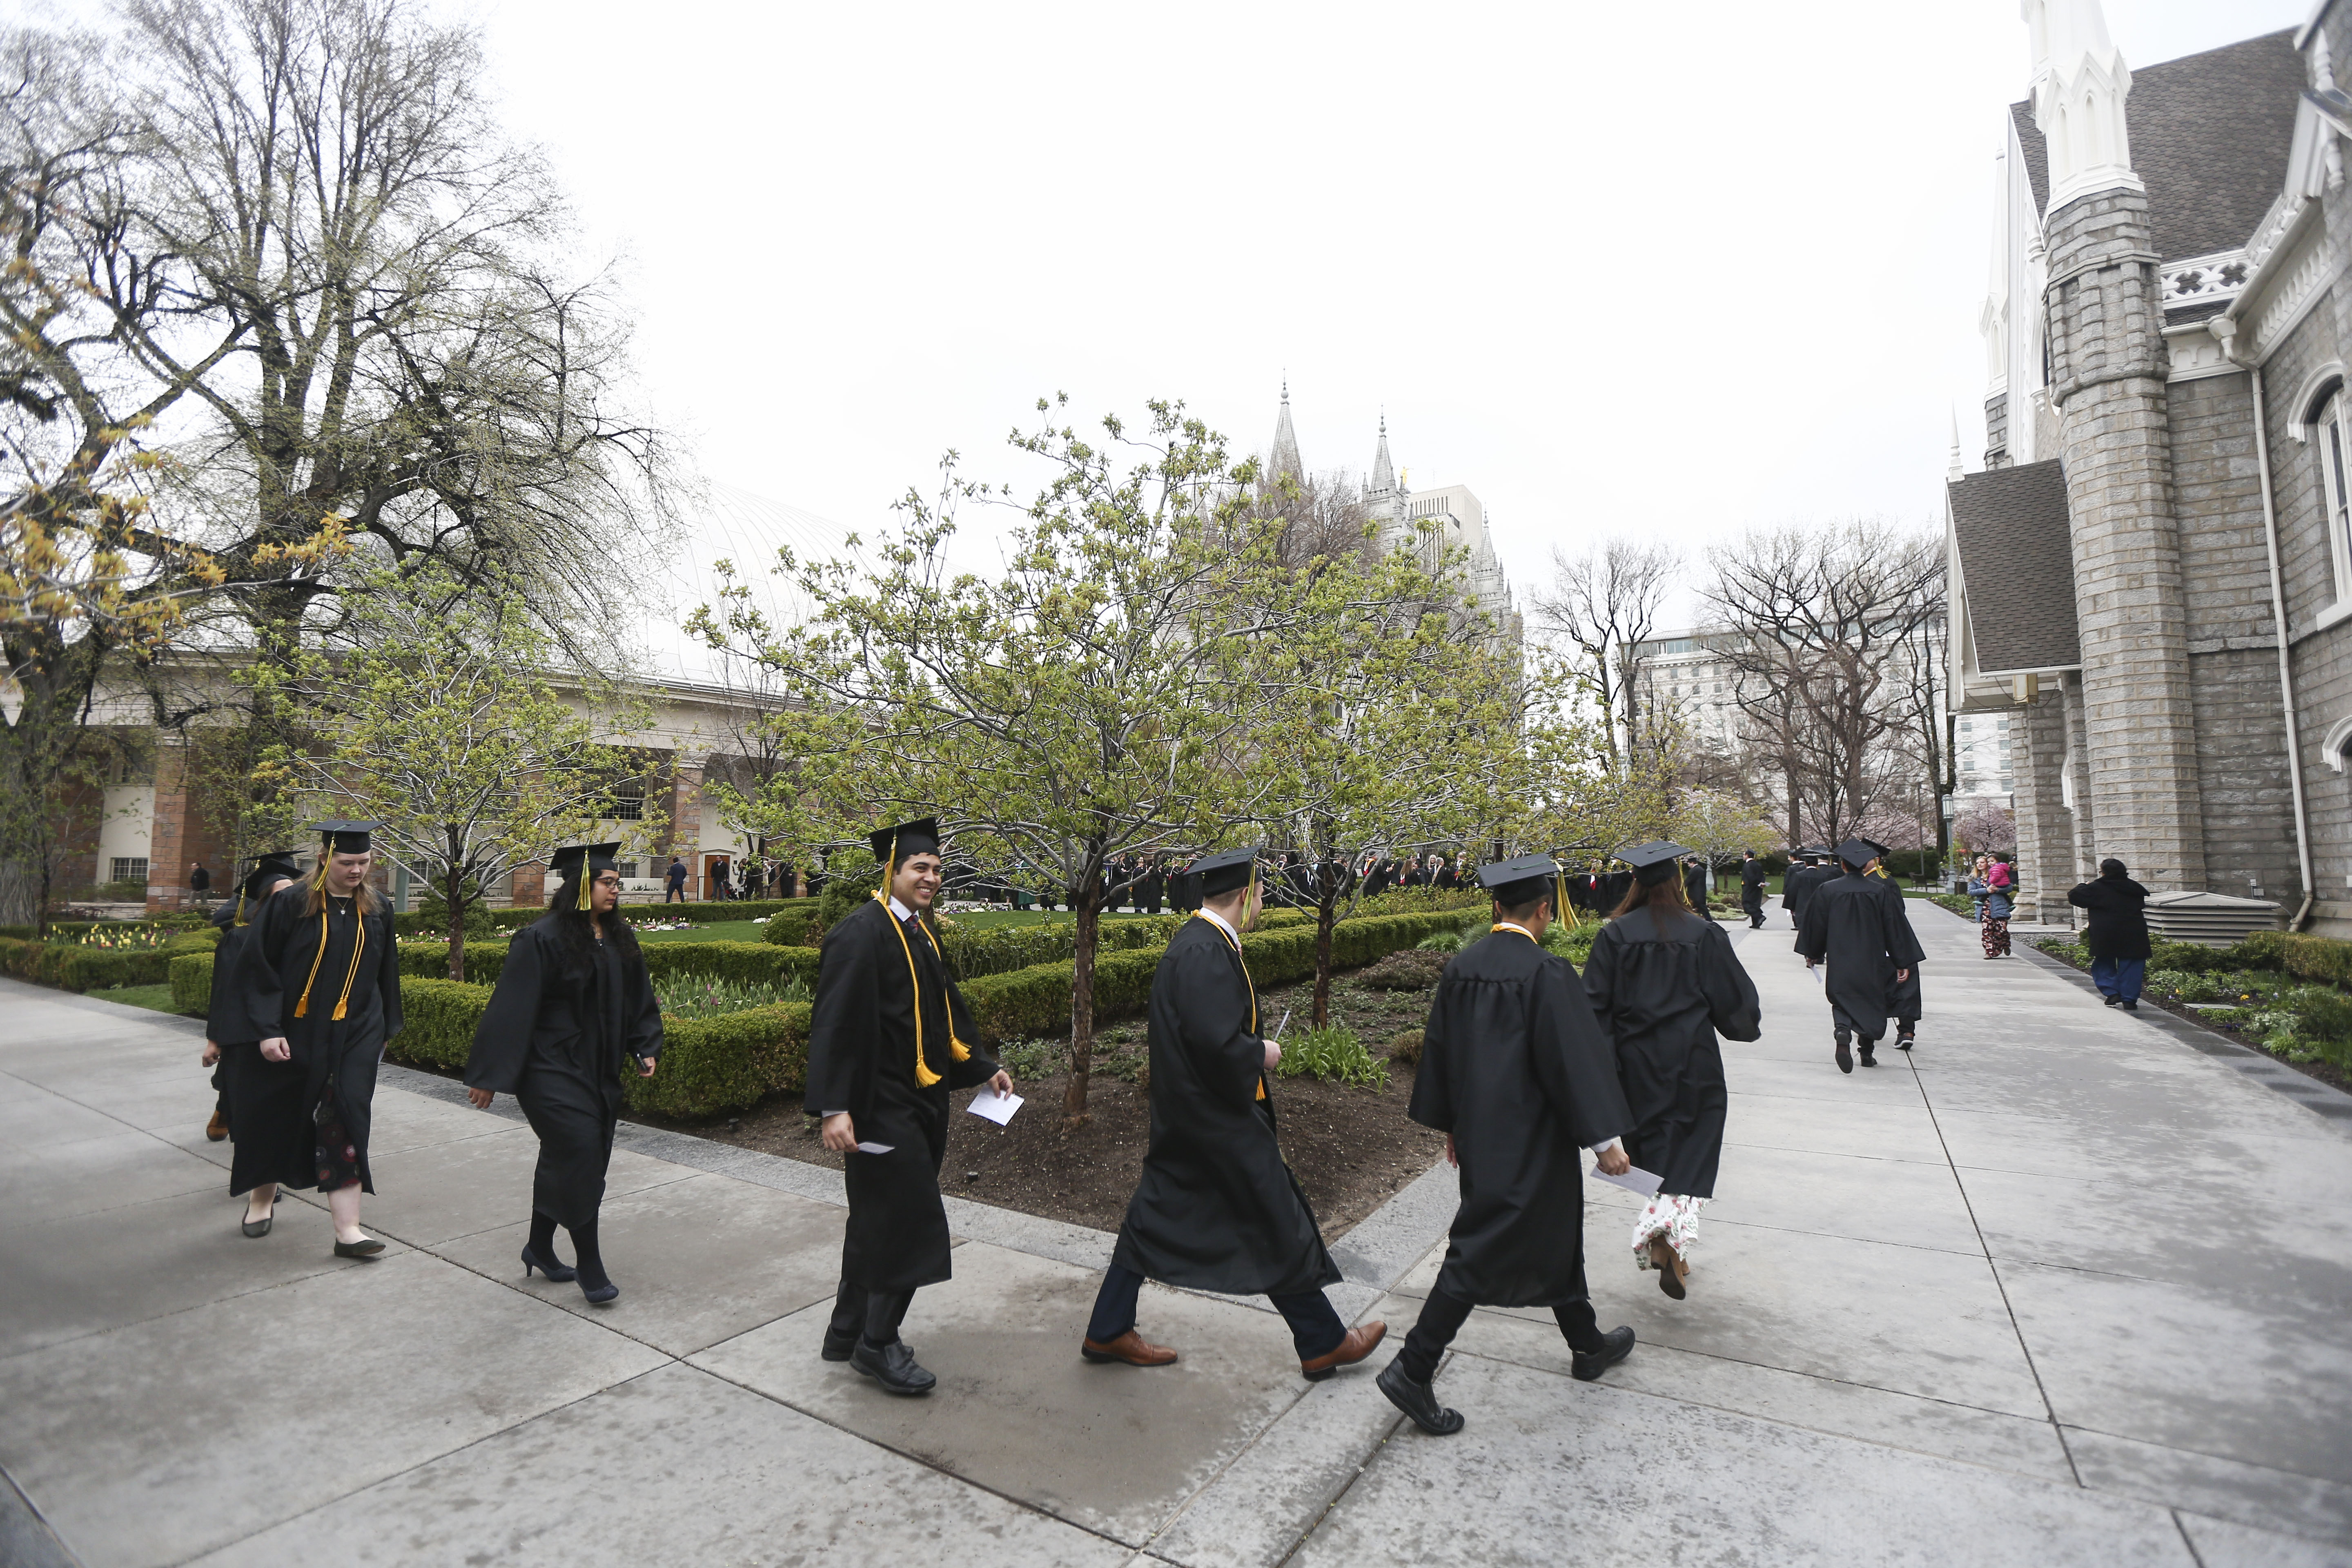 Students from the LDS business college walk to the Tabernacle at Temple Square for their commencement ceremony in Salt Lake City on Friday, April 12, 2019.